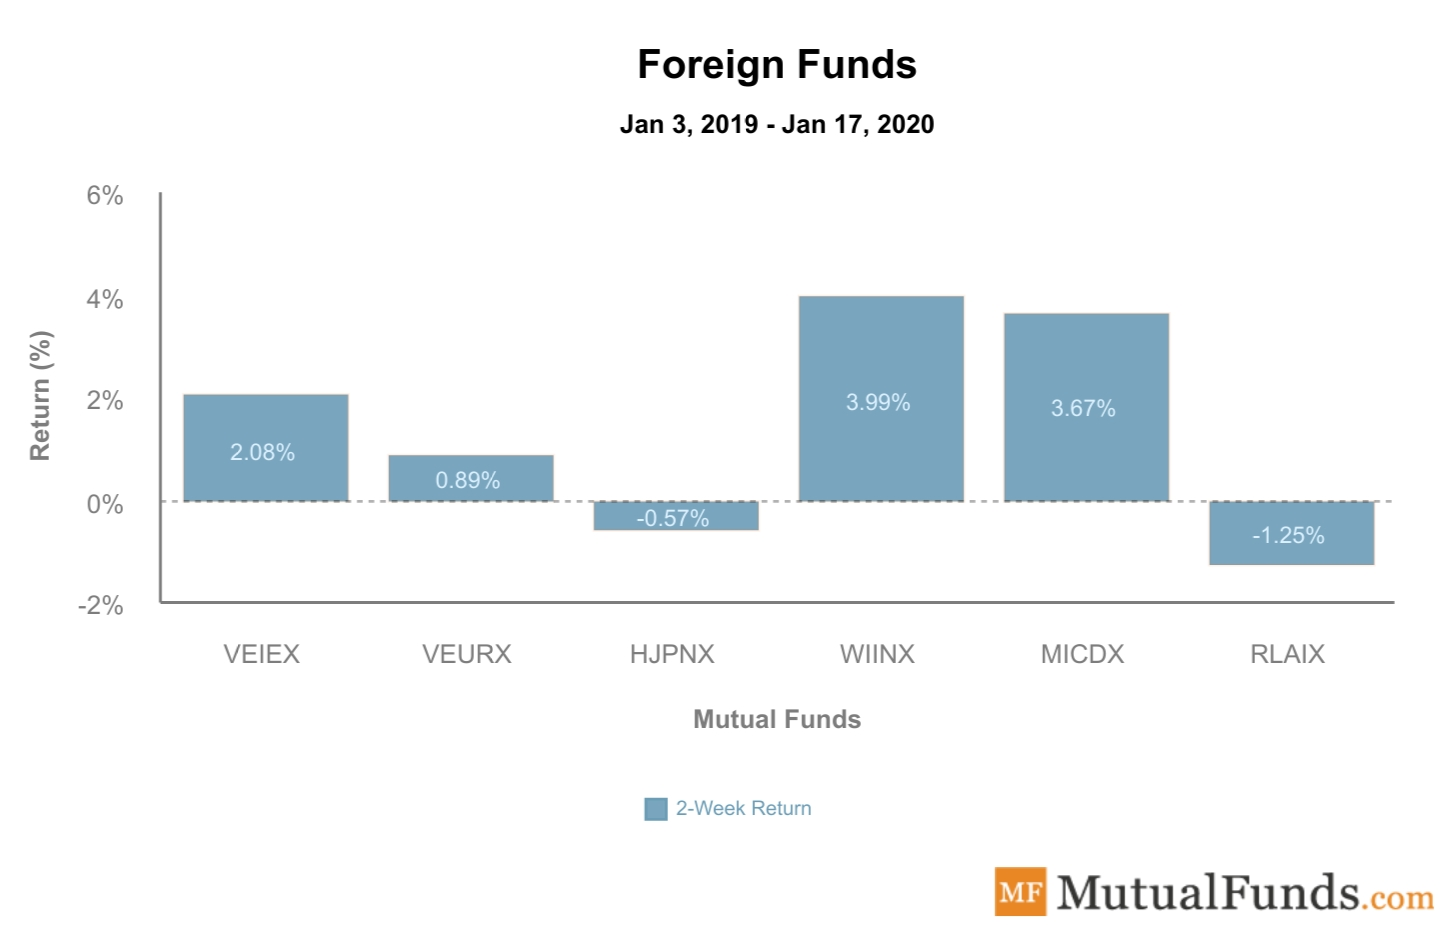 Foreign Funds Performance Jan 21, 2020